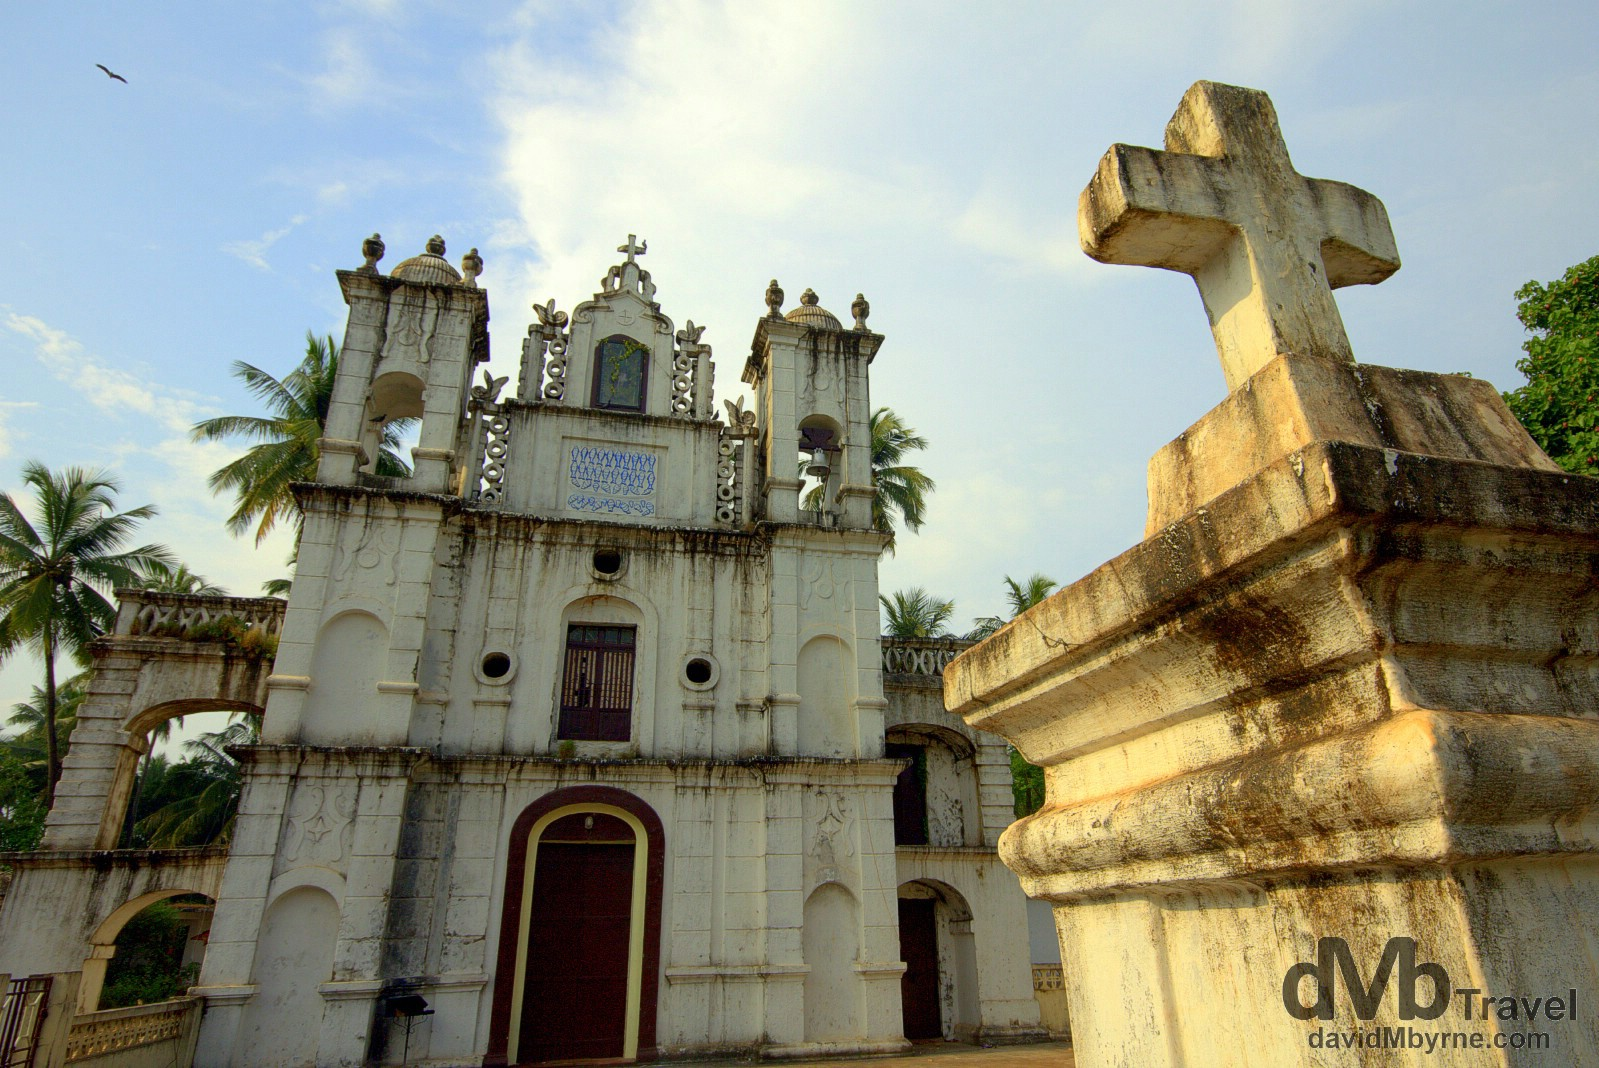 St Anthony's Chapel, Anjuna, Goa, India. September 29th 2012.